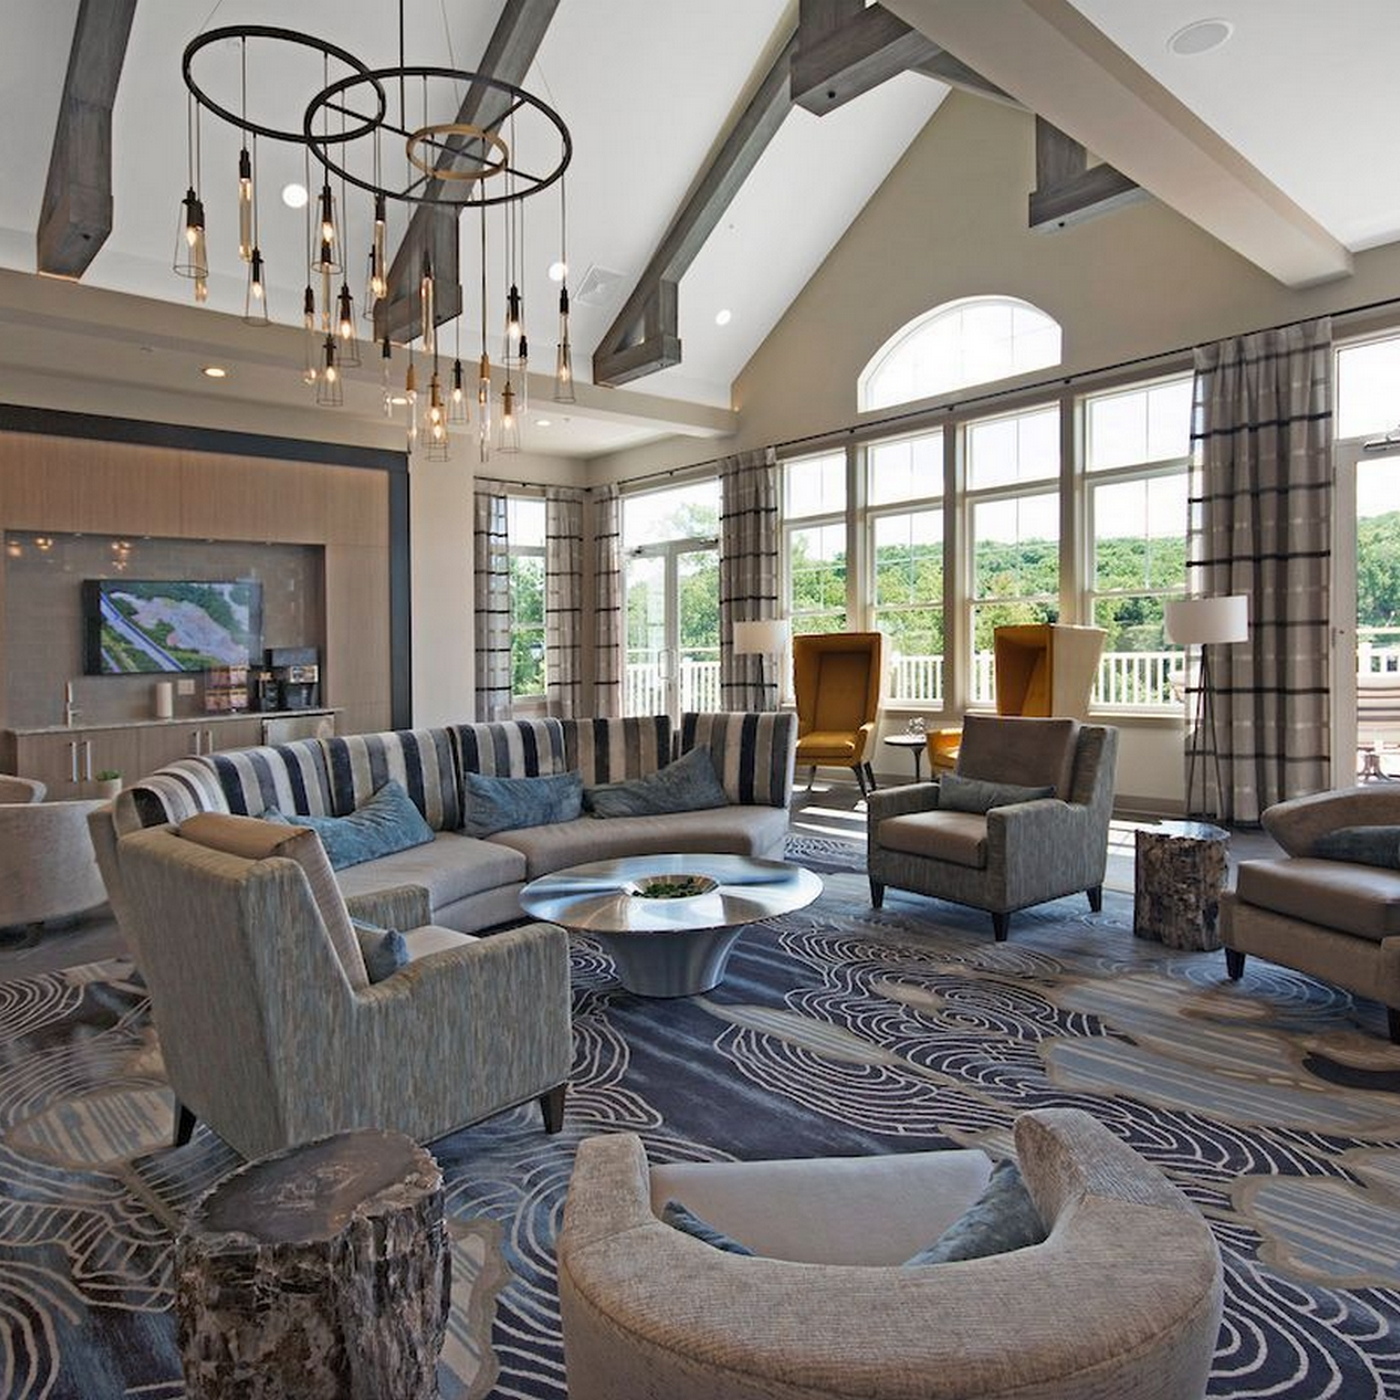 Resident Lounge, carpet, lounge chairs, chandelier, large floor to ceiling windows, neutral colors